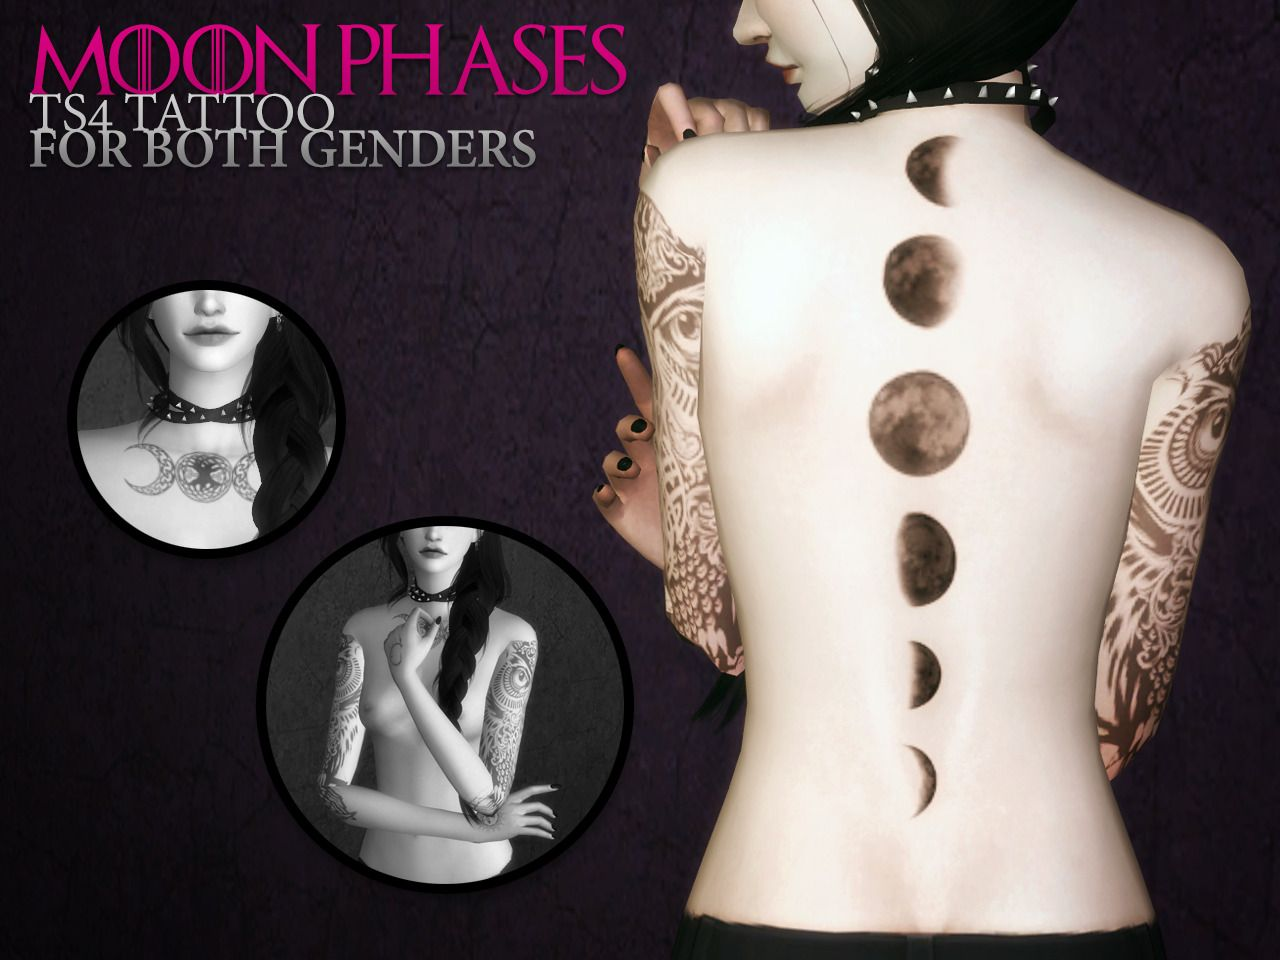 Sims 4 CC - Back tattoo both genders moon phases of the moon